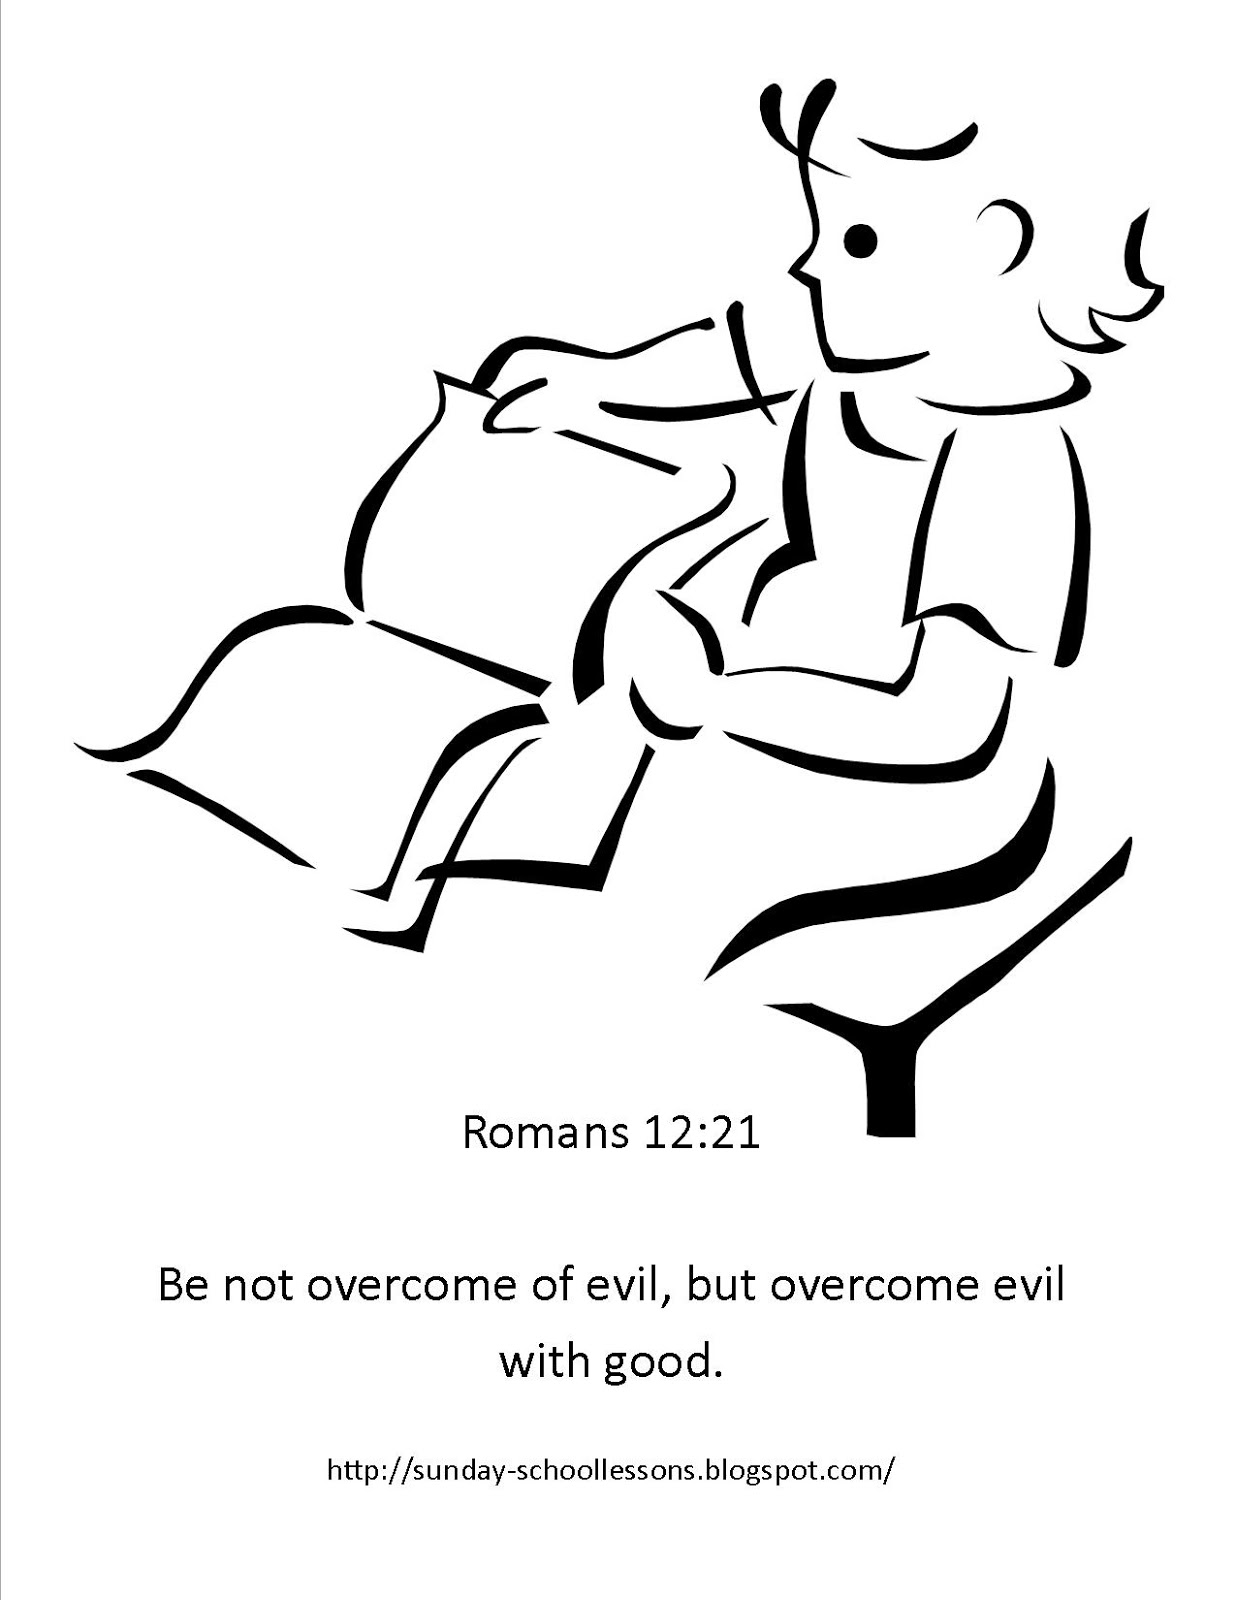 sunday school coloring page - Romans 5 8 Coloring Page